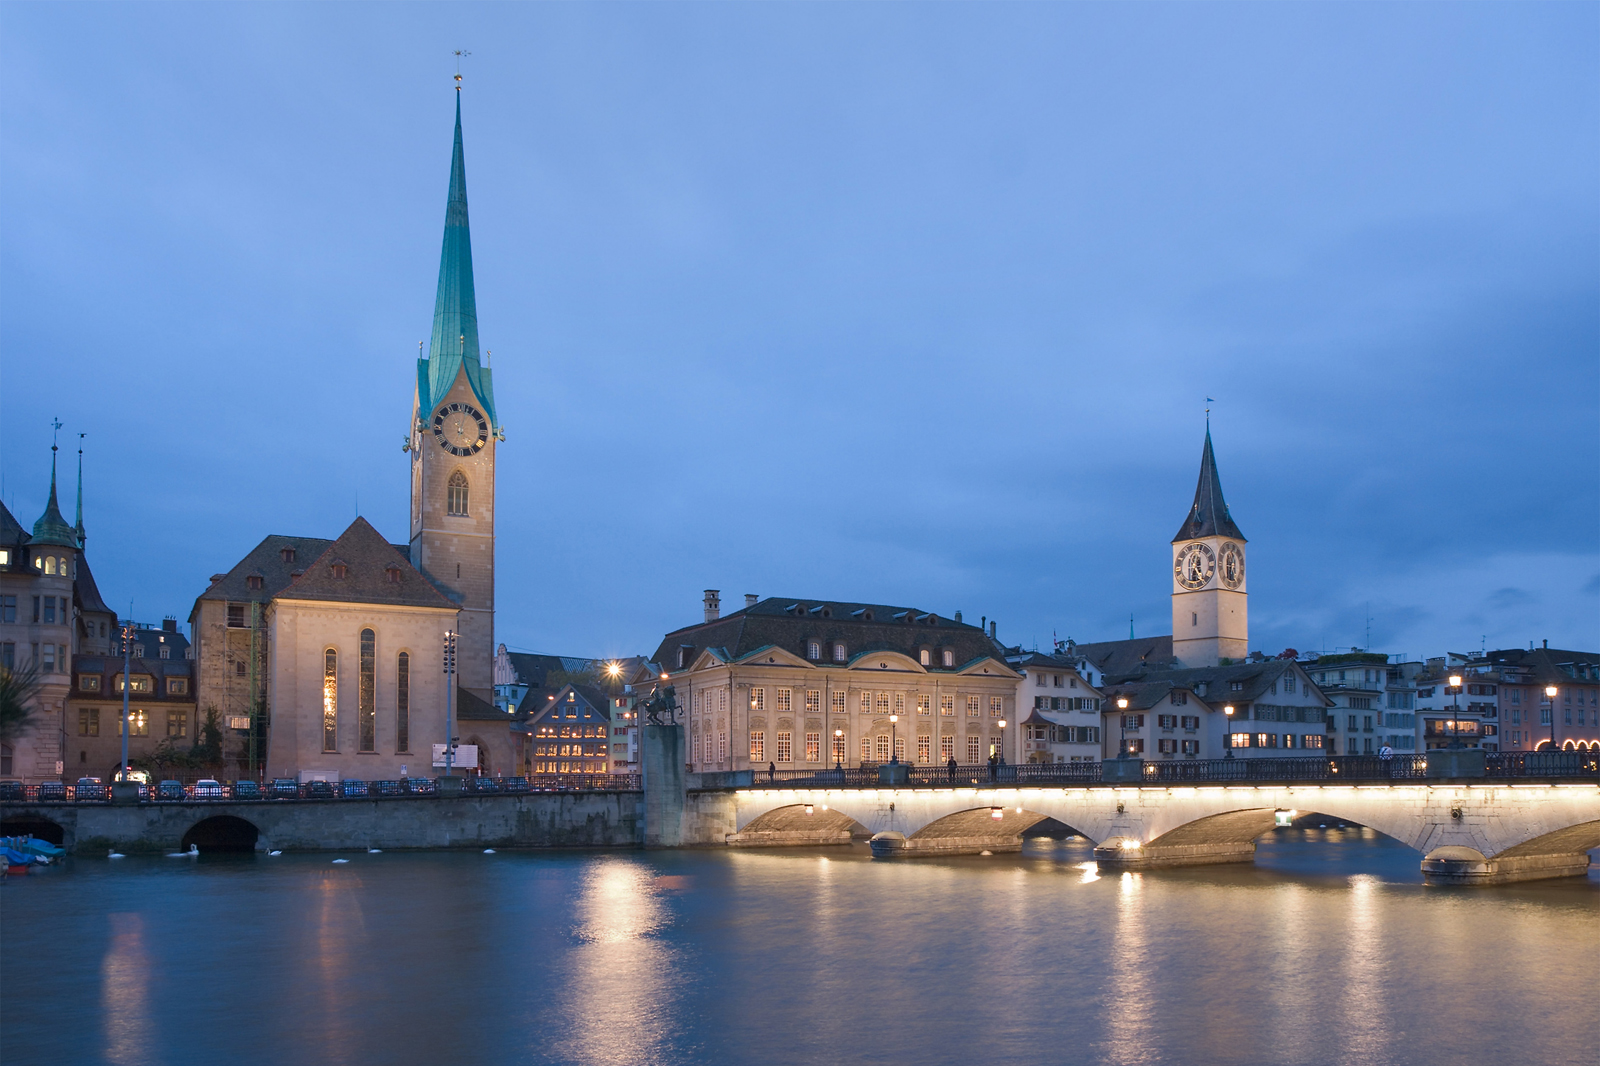 Zurich, Limmat and churches Fraumunster / St. Peter (CH / ZH)